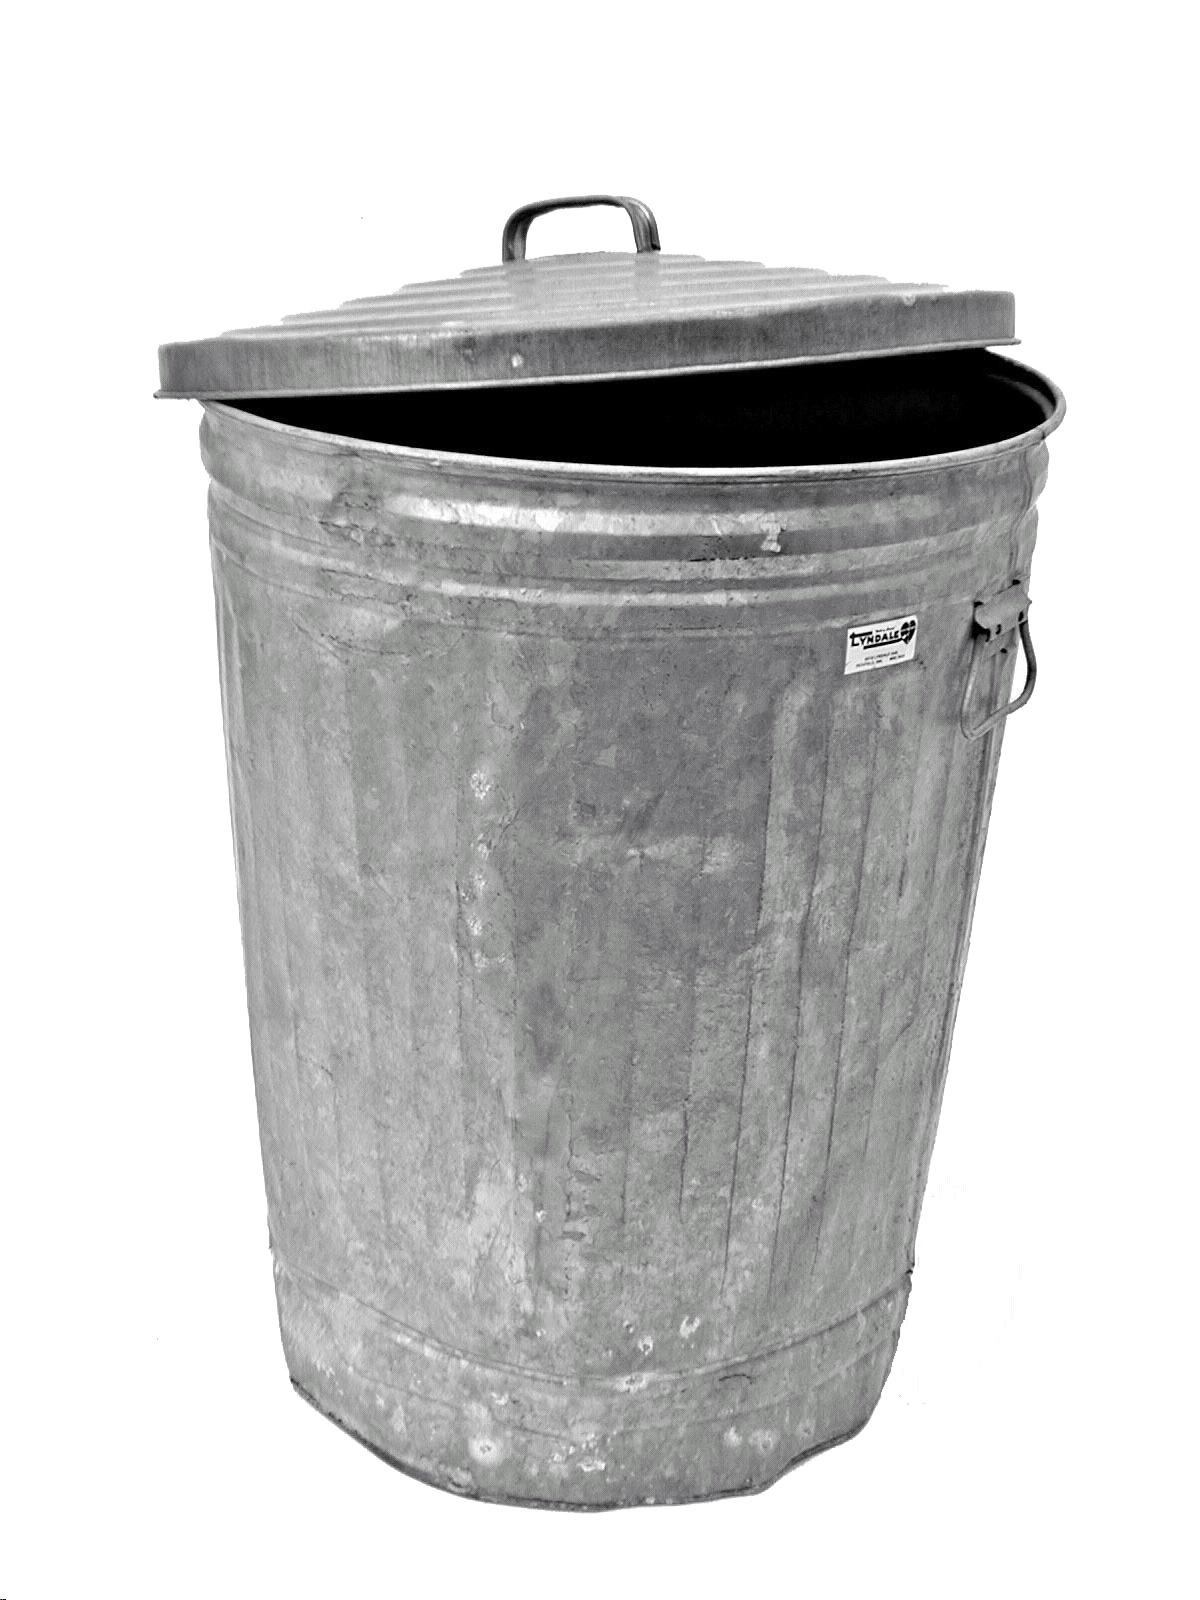 Garbage can png. Trash transparent images all